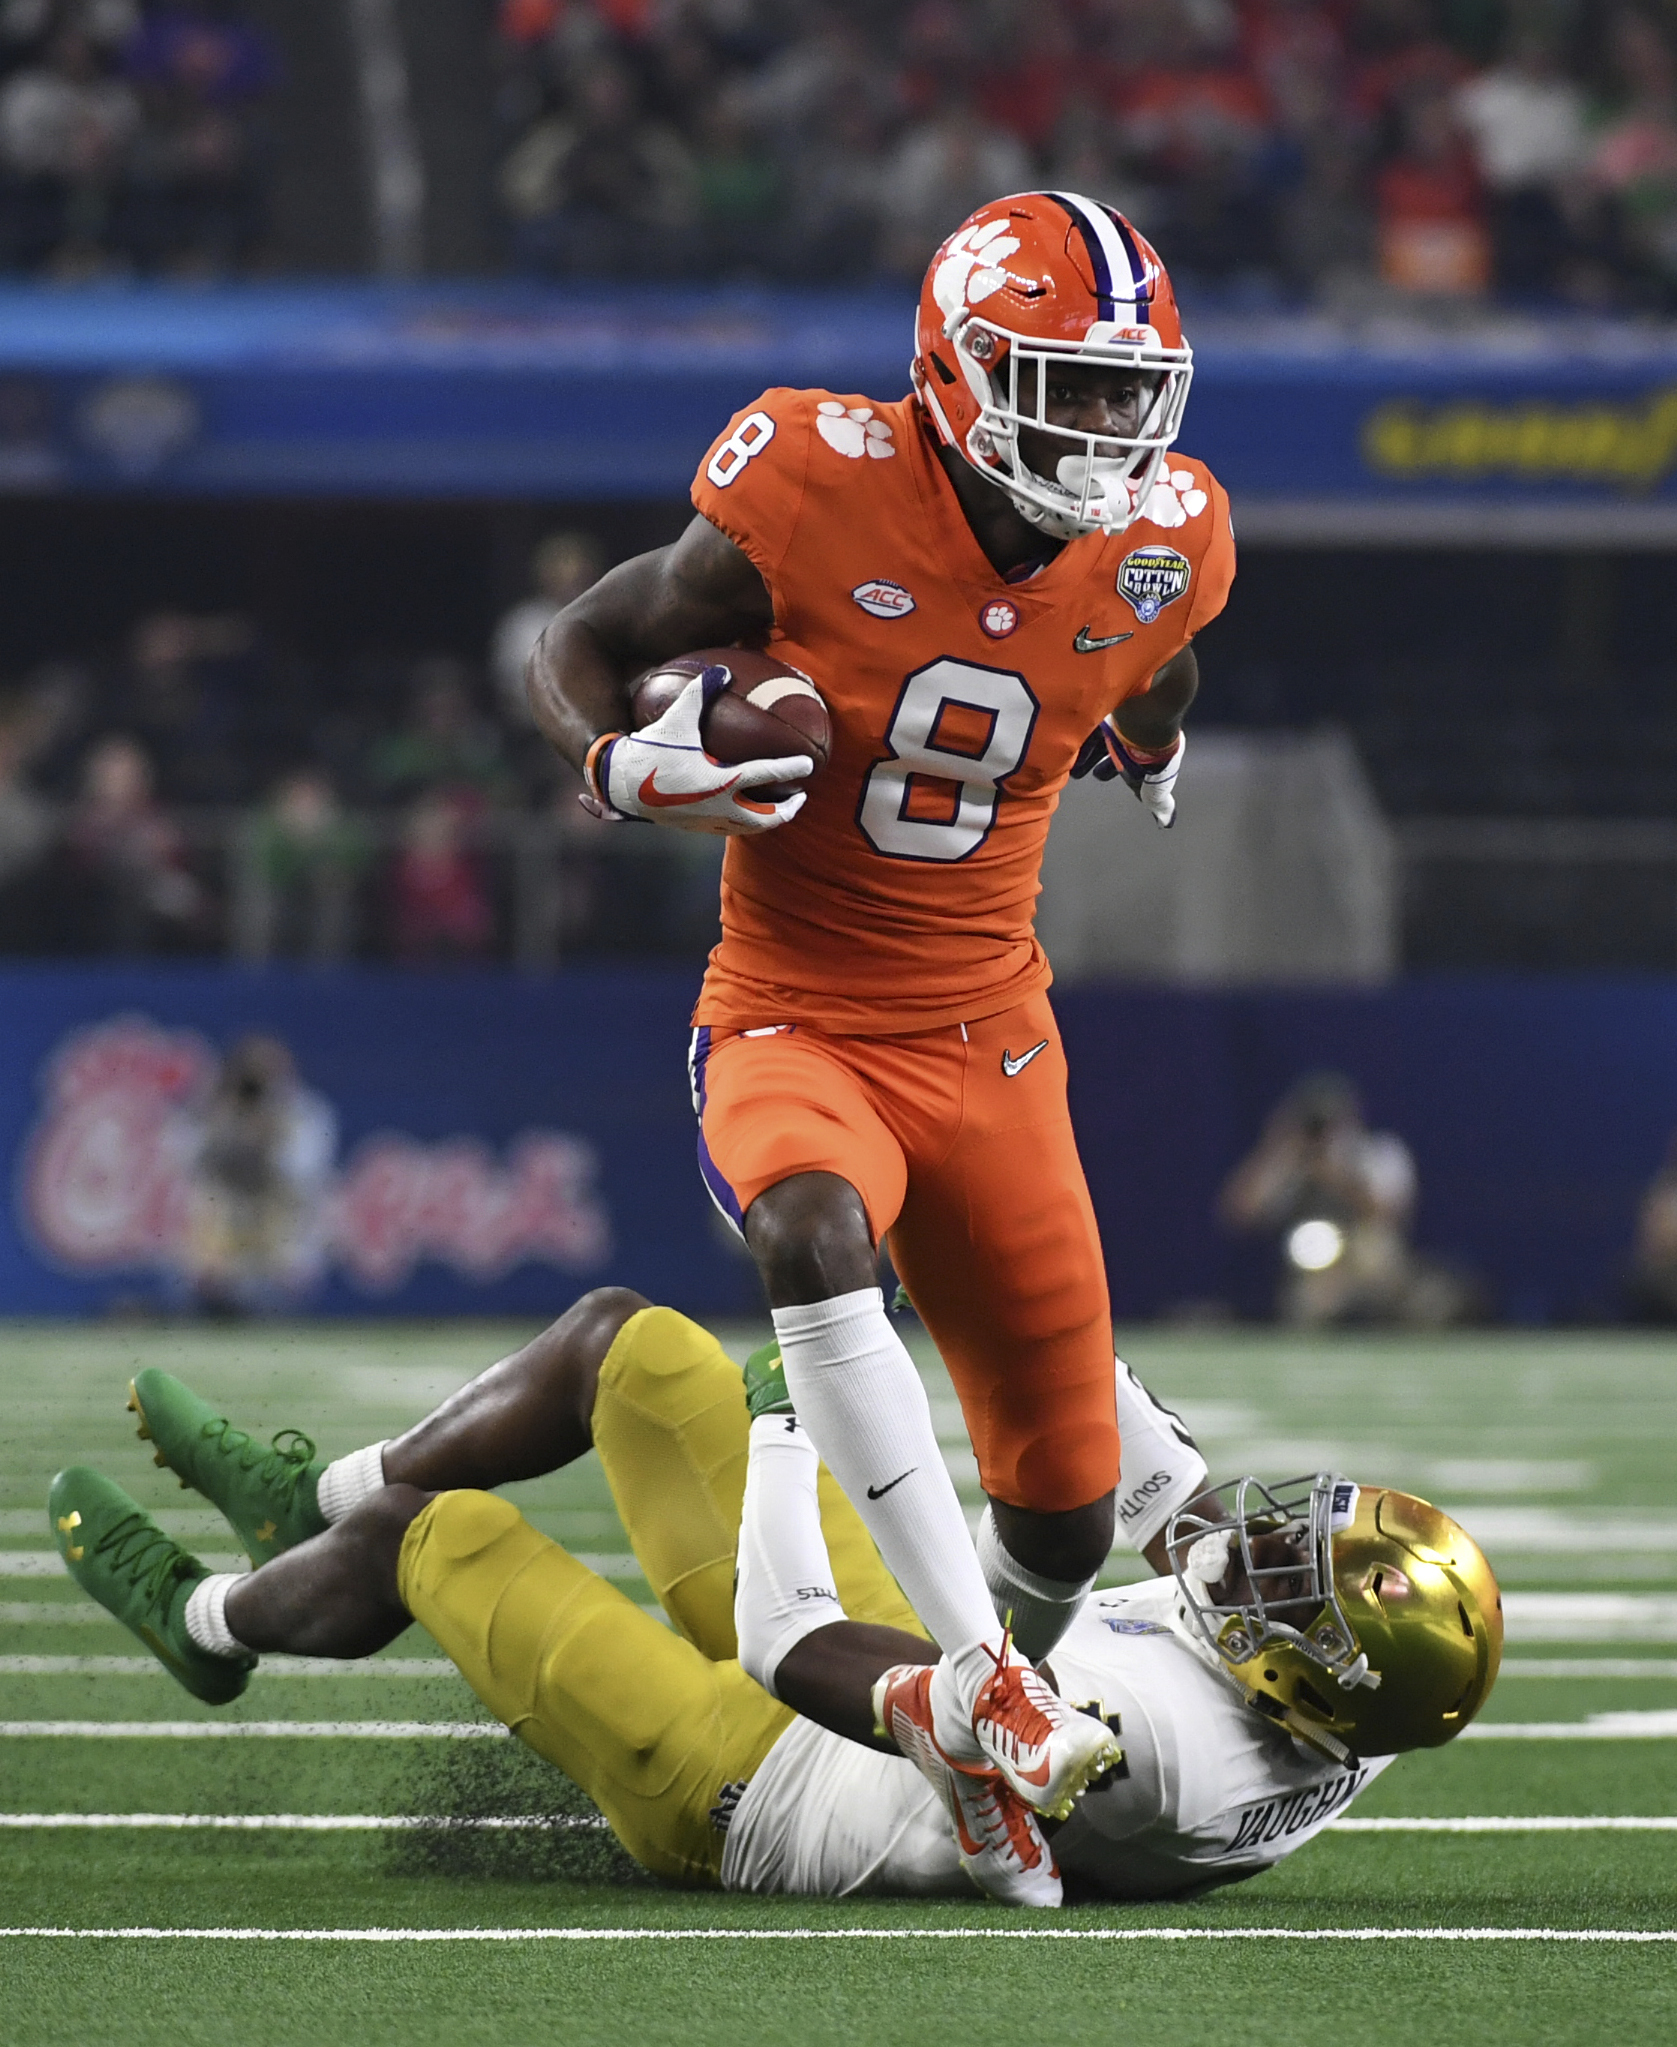 Clemson wide receiver Justyn Ross (8) catches a long in front of Clemson cornerback A.J. Terrell (8) in the first half of the NCAA Cotton Bowl semi-final playoff football game, Saturday, Dec. 29, 2018, in Arlington, Texas. (AP Photo/Jeffrey McWhorter)